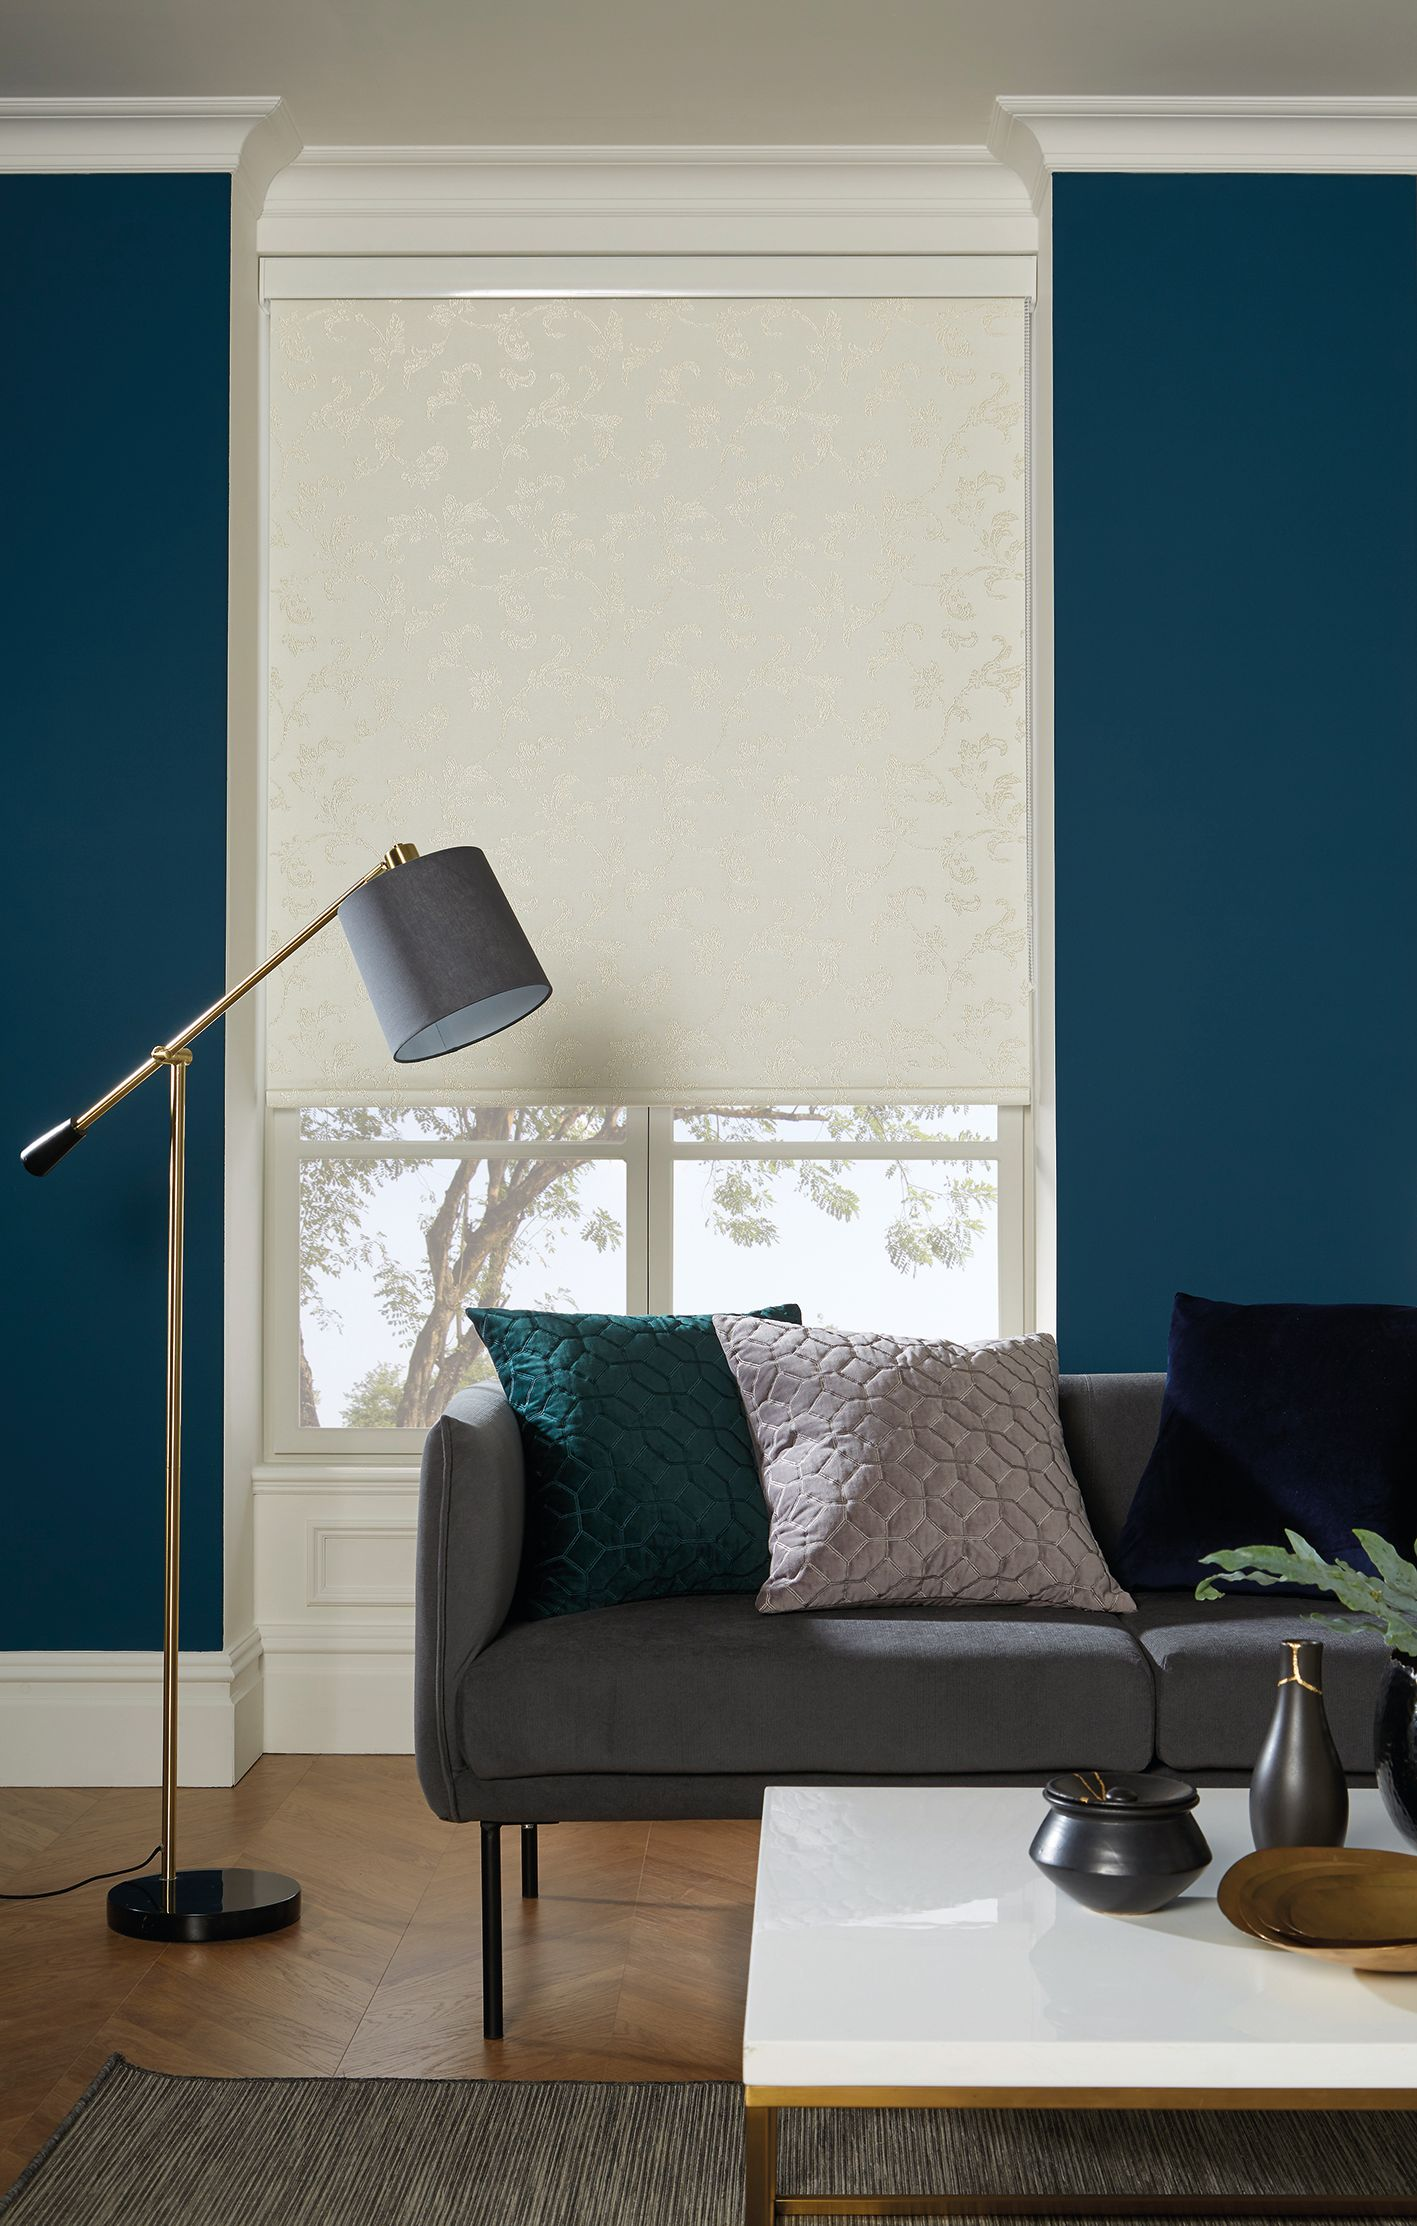 Control heat and light with roller blinds